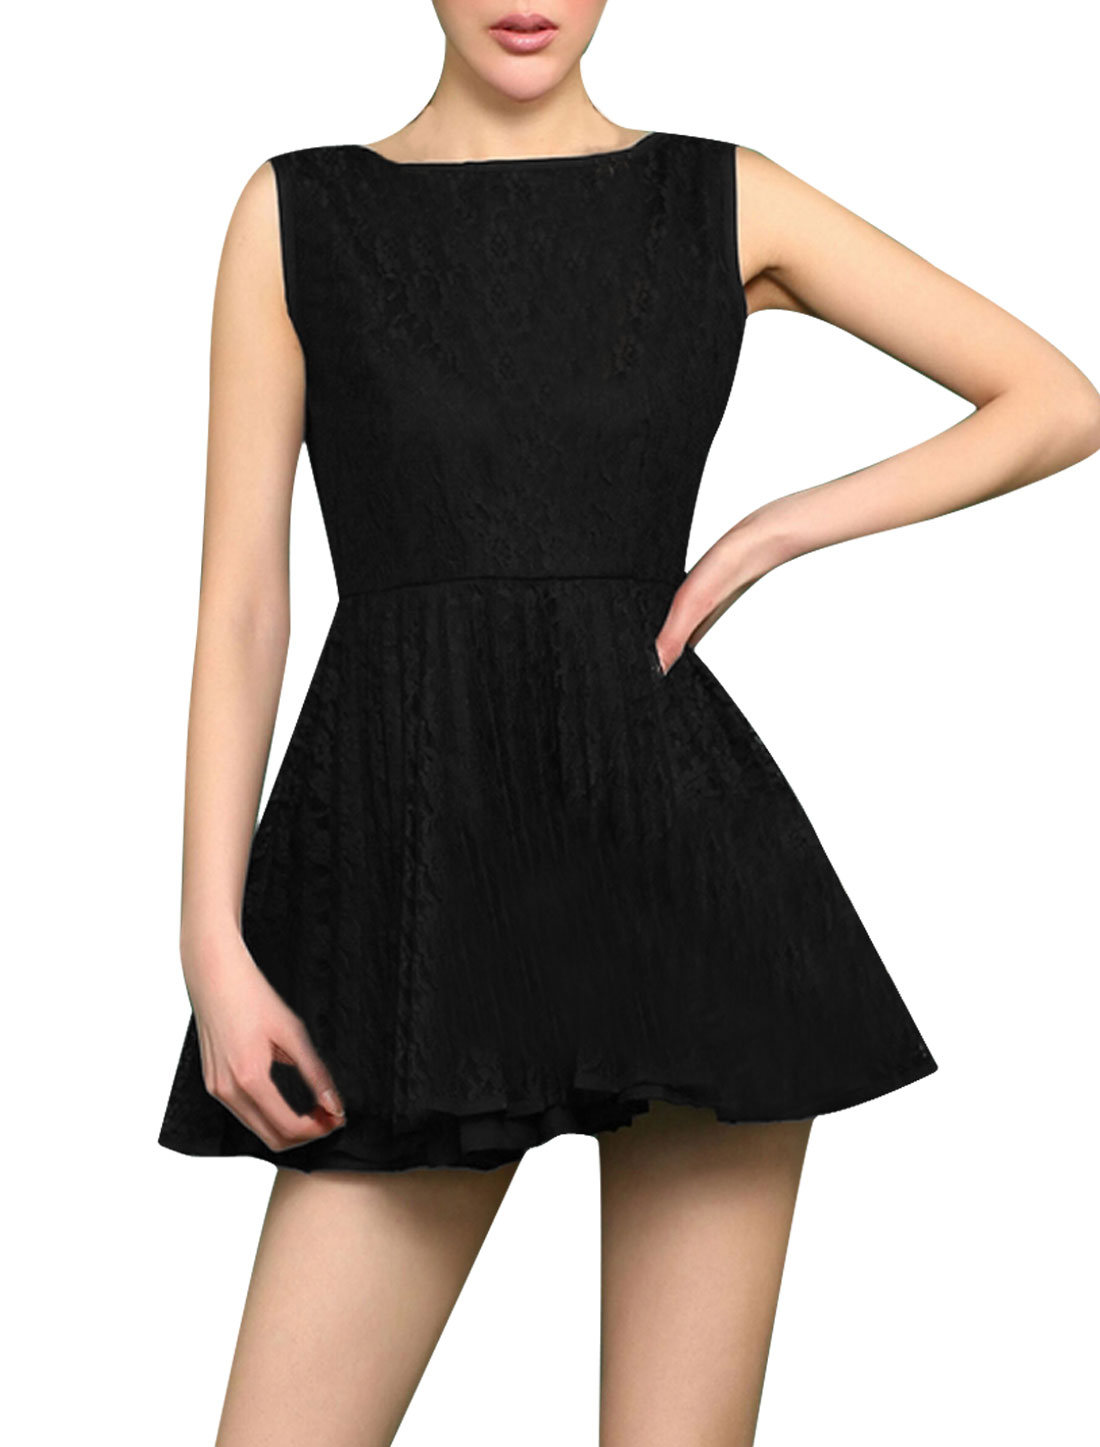 S Ladies Crochet Style Deep V Back Sleeveless Sexy Party Summer Dress Black